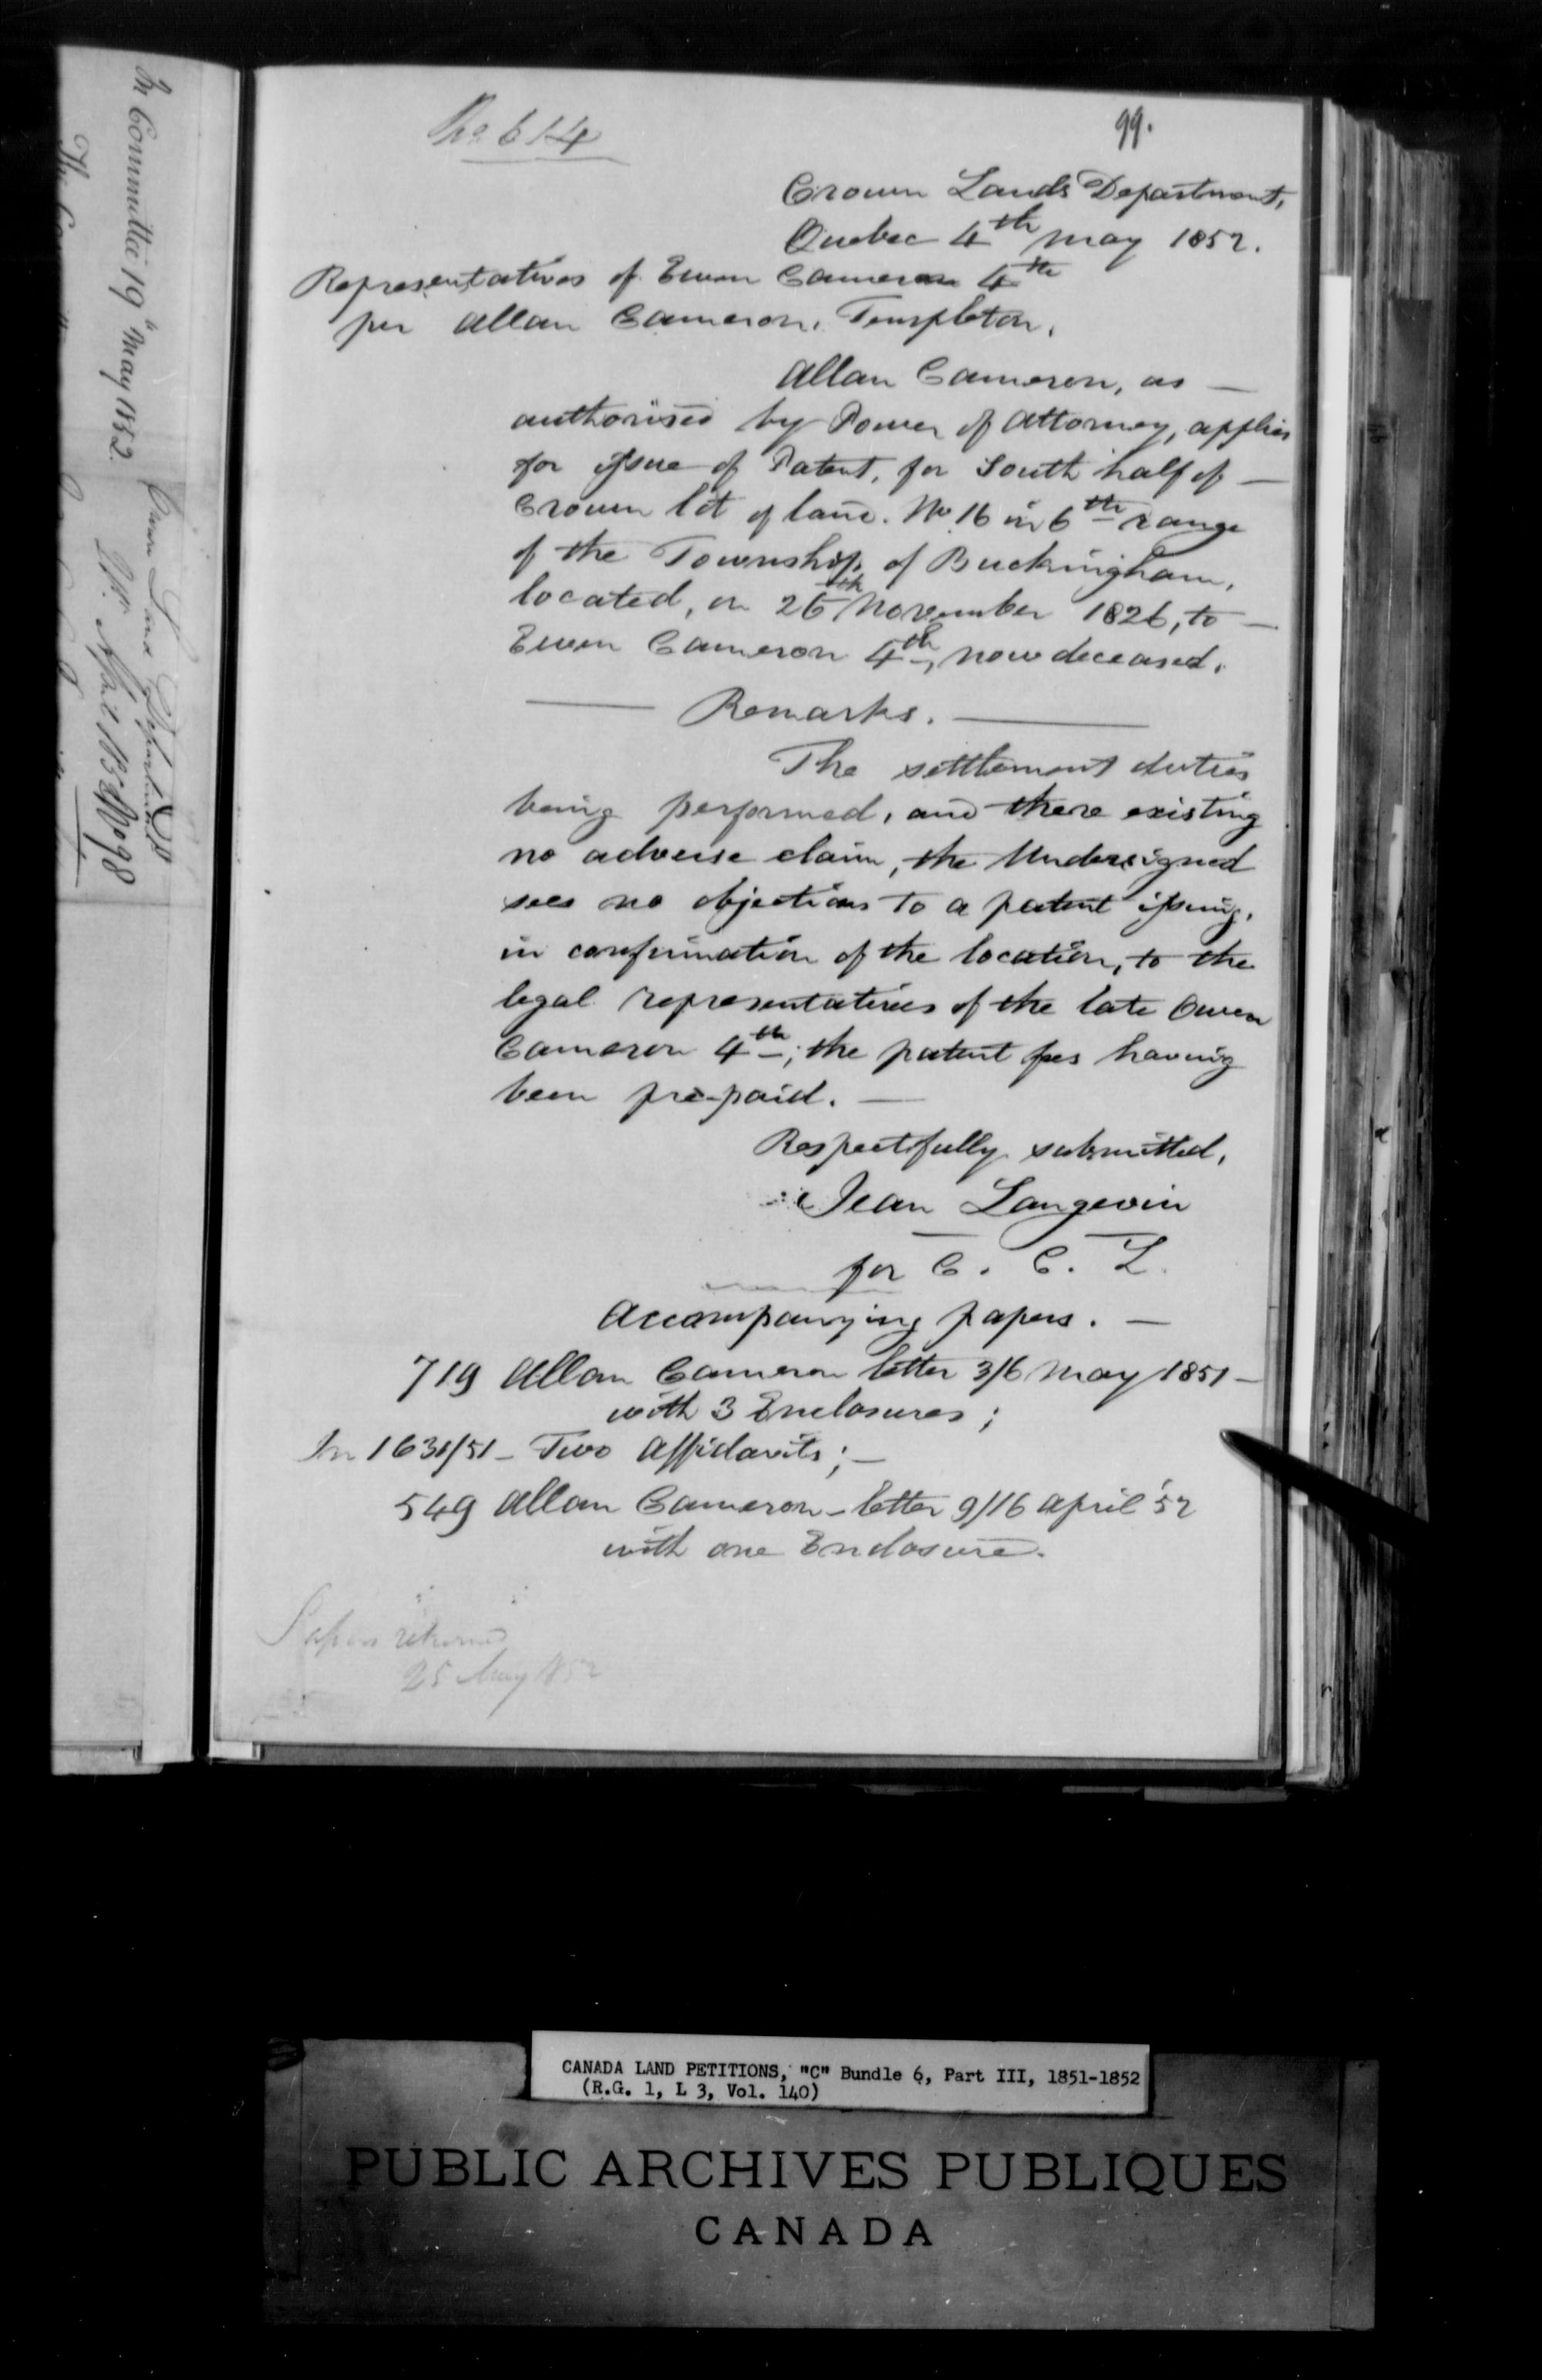 Title: Upper Canada Land Petitions (1763-1865) - Mikan Number: 205131 - Microform: c-1737